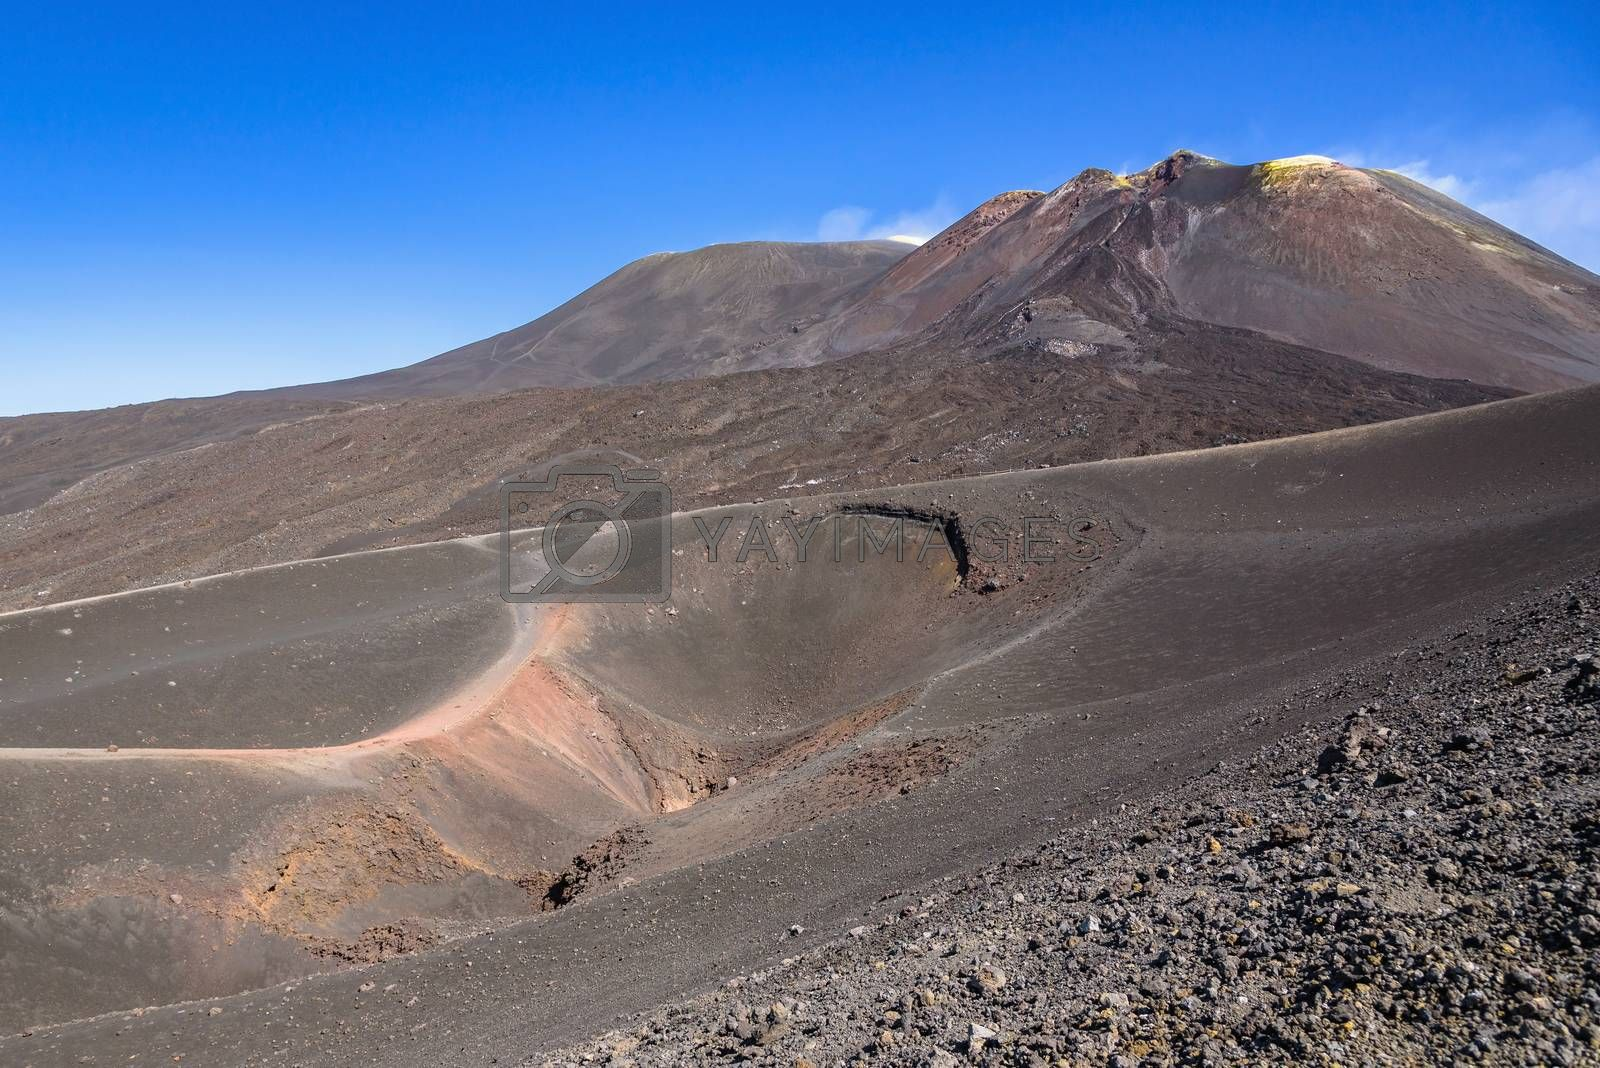 View of Etna crater created by eruption in 2002 with main craters in the background, Sicily, Italy